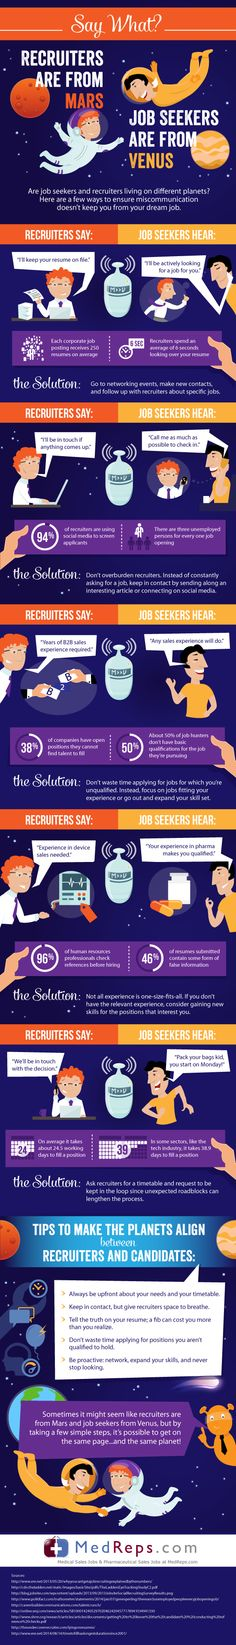 358 best Recruitment Tips images on Pinterest Career, Human - good job qualifications